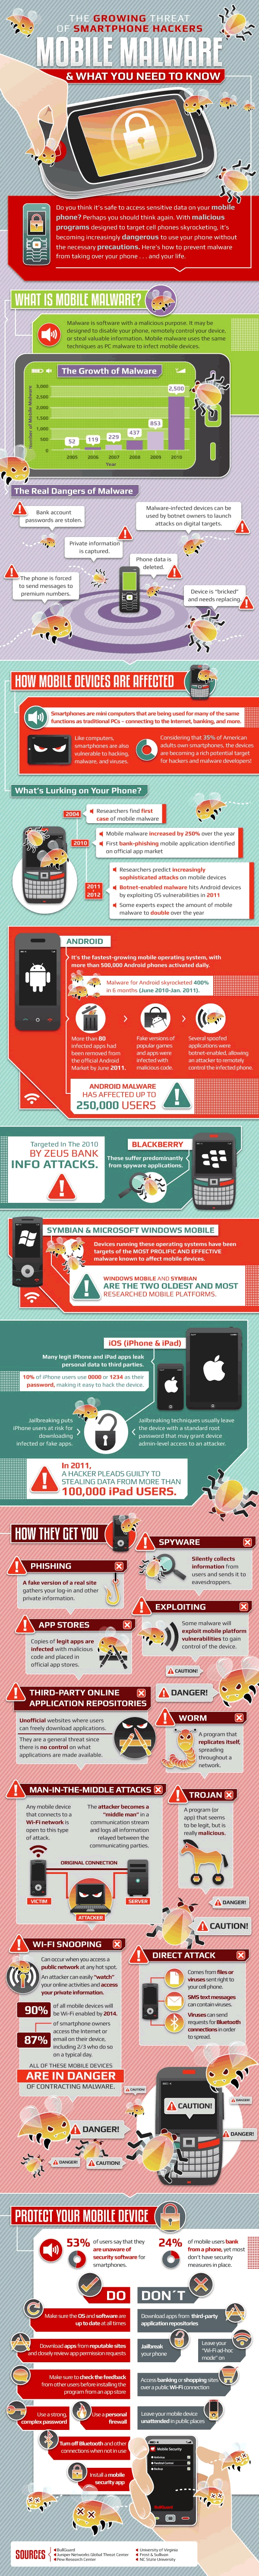 How Mobile Malware Affects Your Smartphone